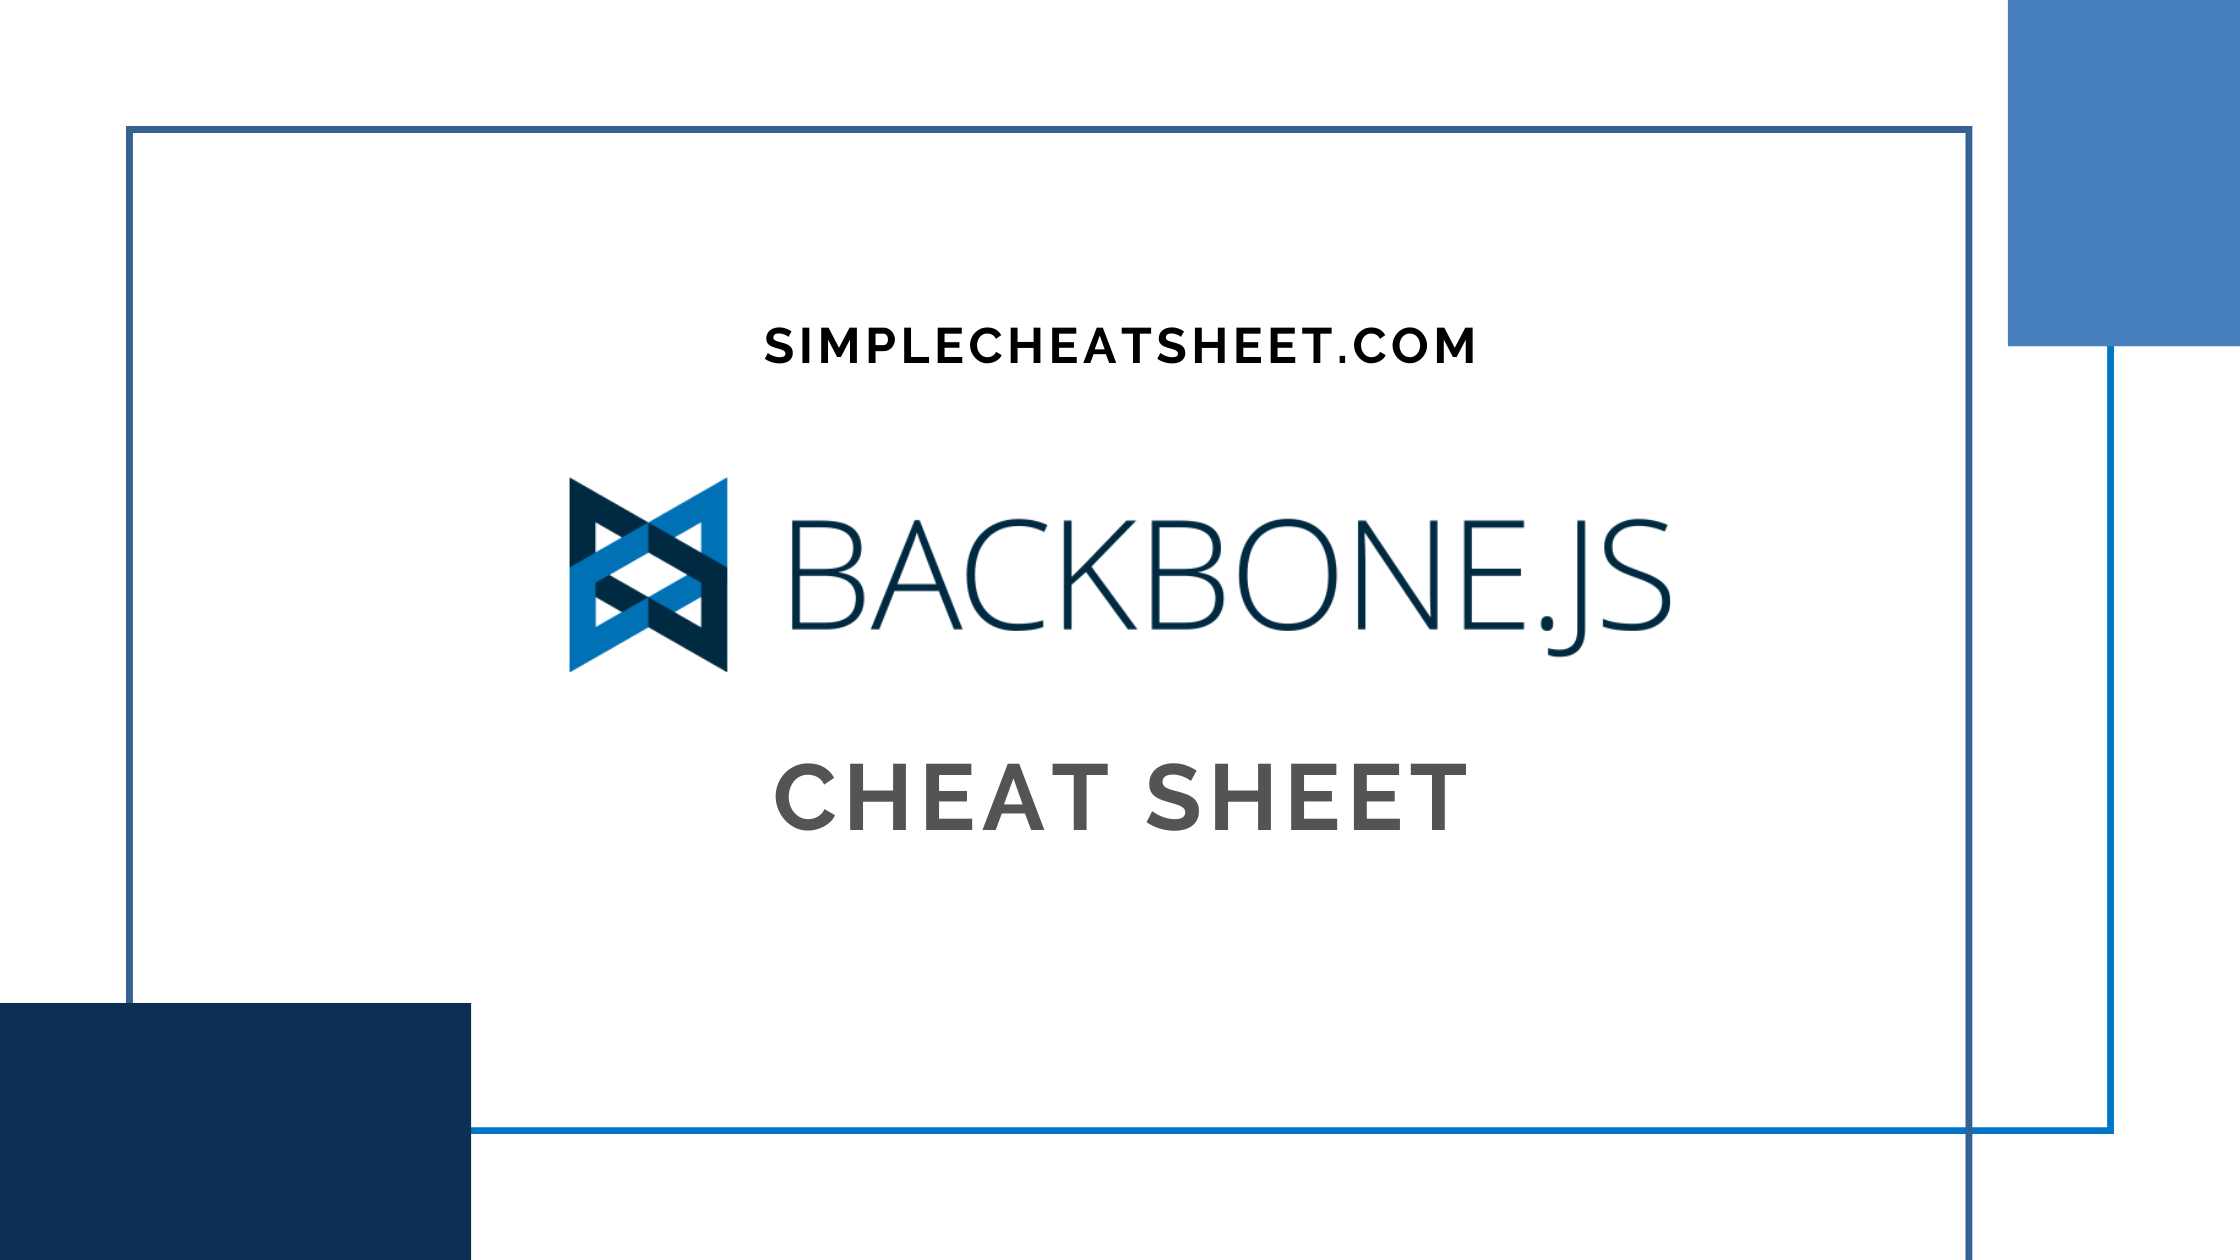 Backbonejs cheat sheet